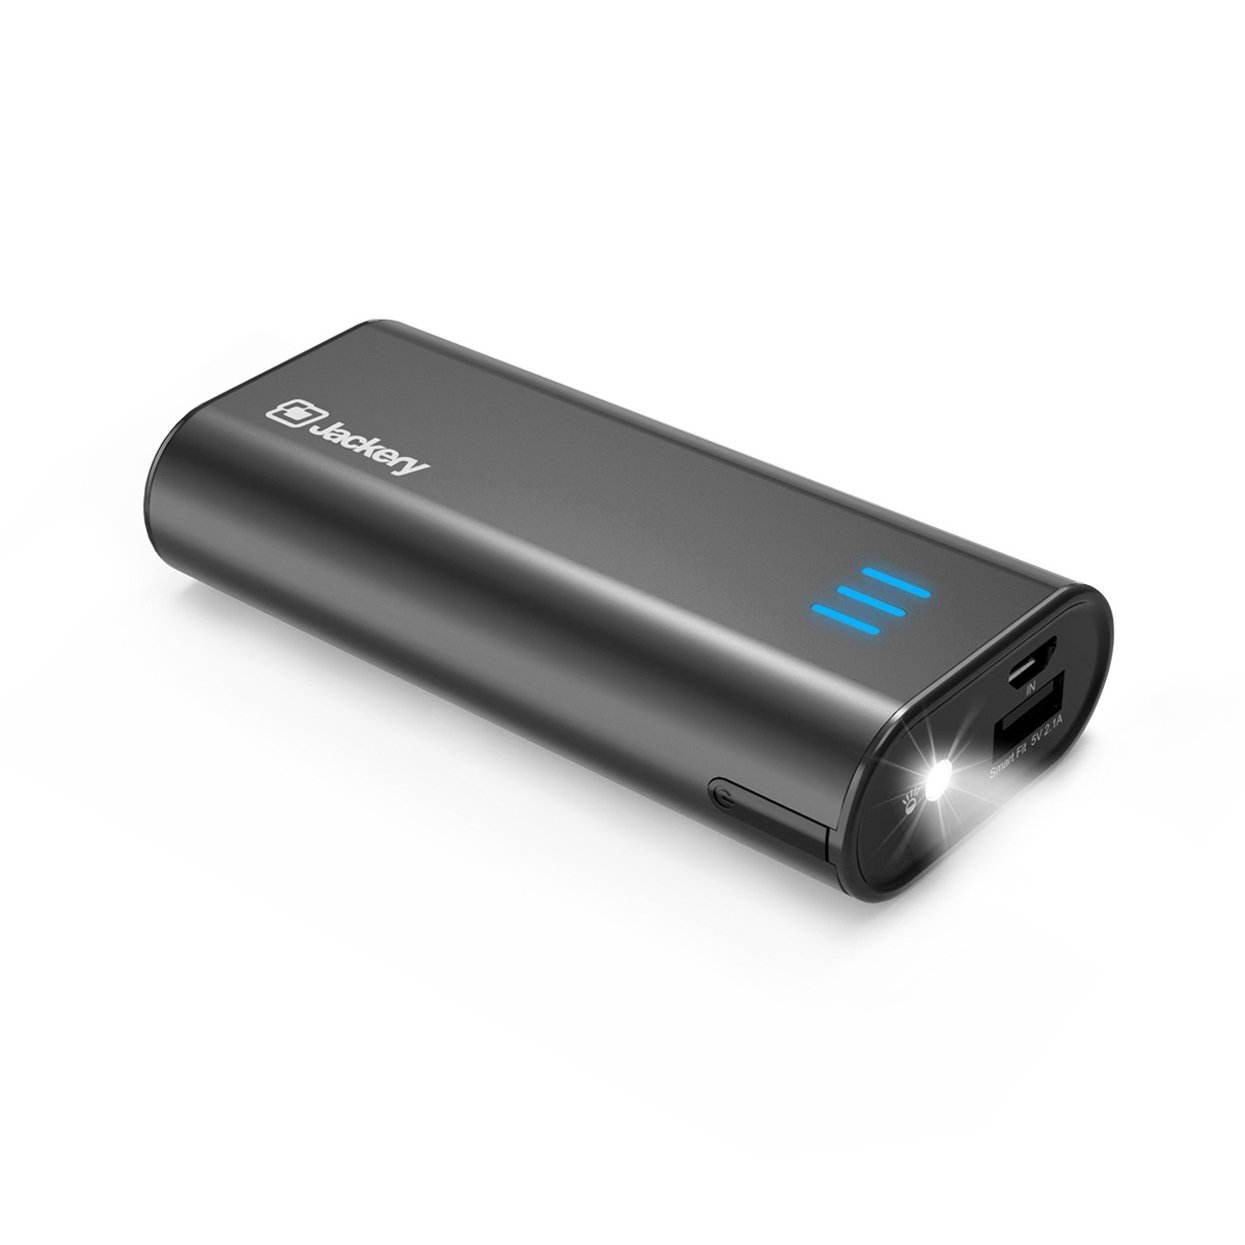 Jackery Portable Charger Bar 6000mAh Pocket-sized External Battery Pack Fast charger Power Bank Emergency LED Flashlight iPhone, Samsung Other Devices - Black